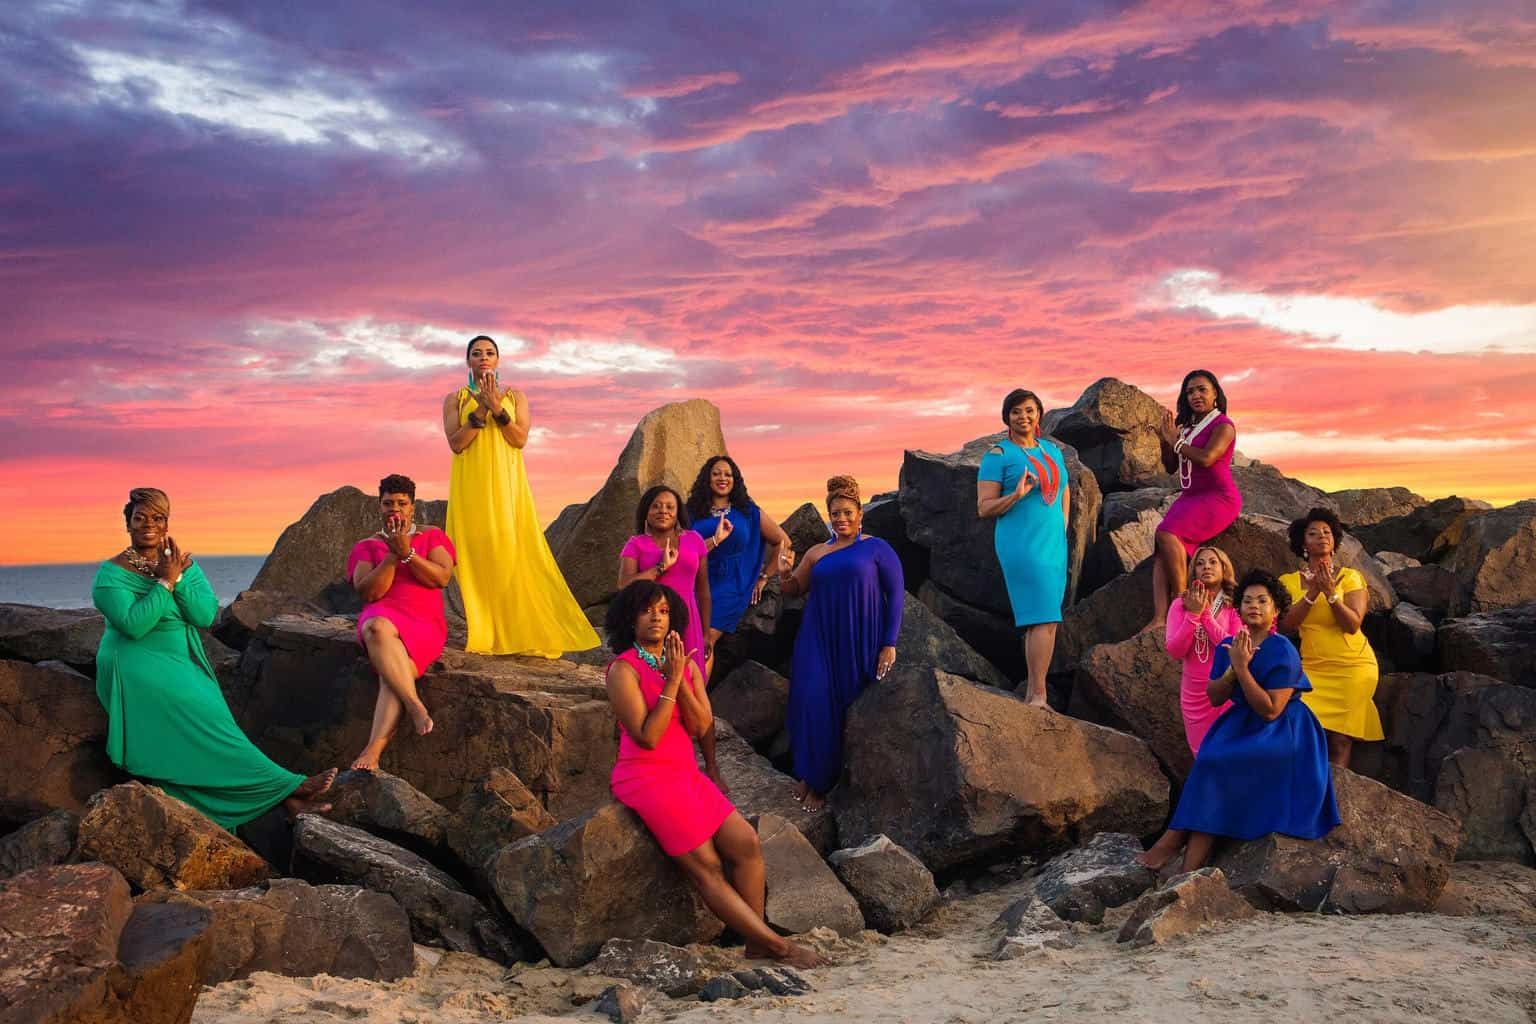 acea9078add5 These Women of Alpha Kappa Alpha Celebrated Their 20th AKAversary With a  Stunning Photo Shoot - Watch The Yard